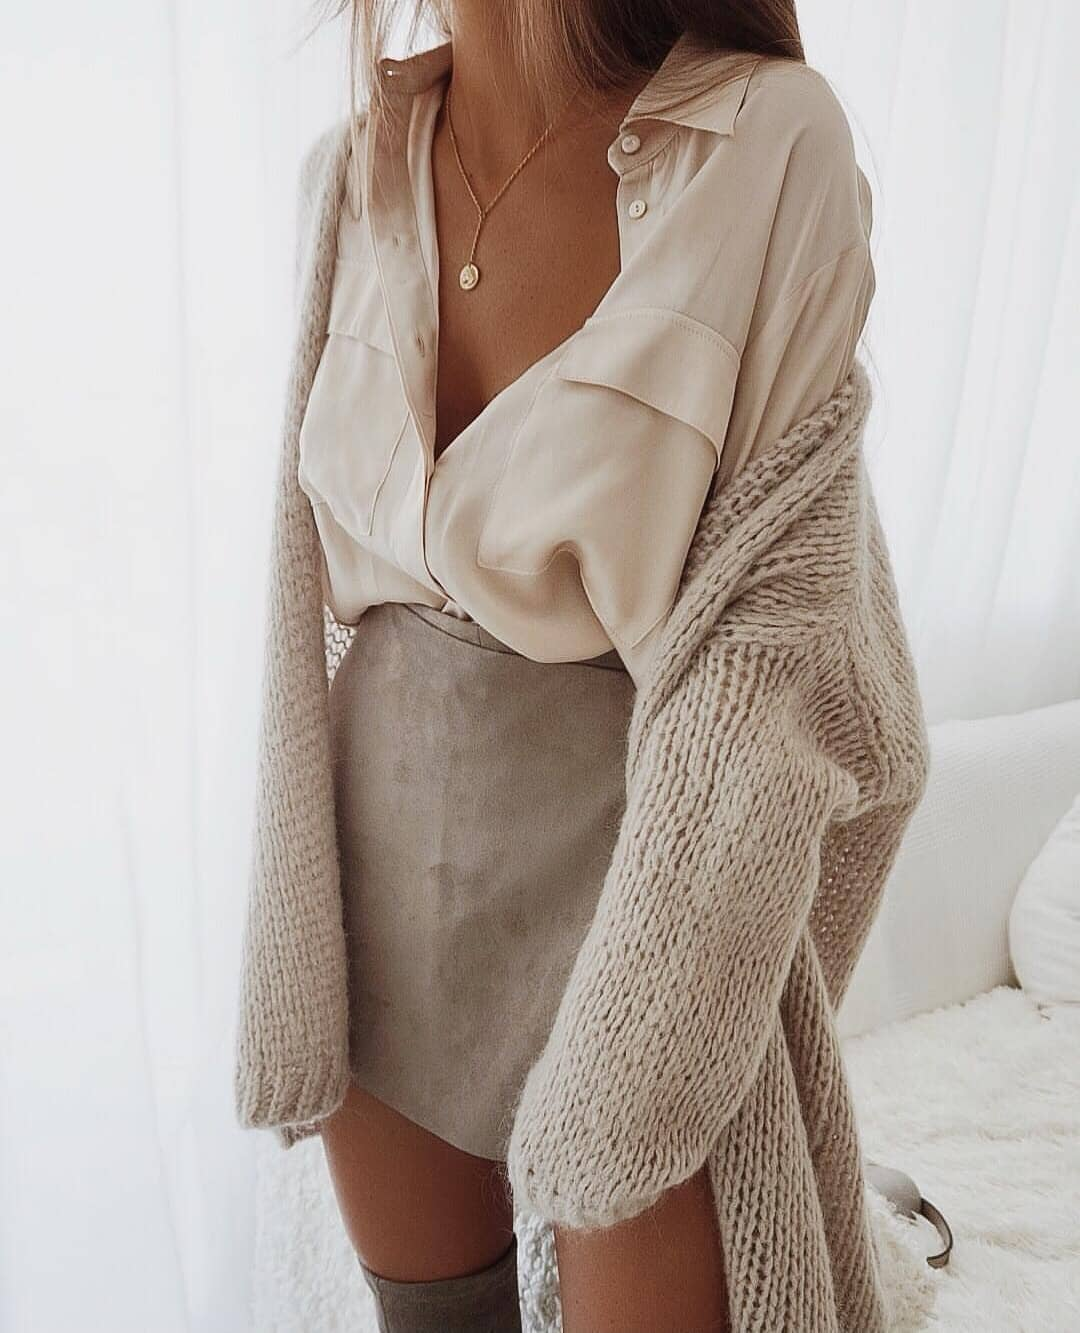 Fall Monochrome Essentials: Beige Shirt, Cream Suede Skirt And Beige Cardigan 2020